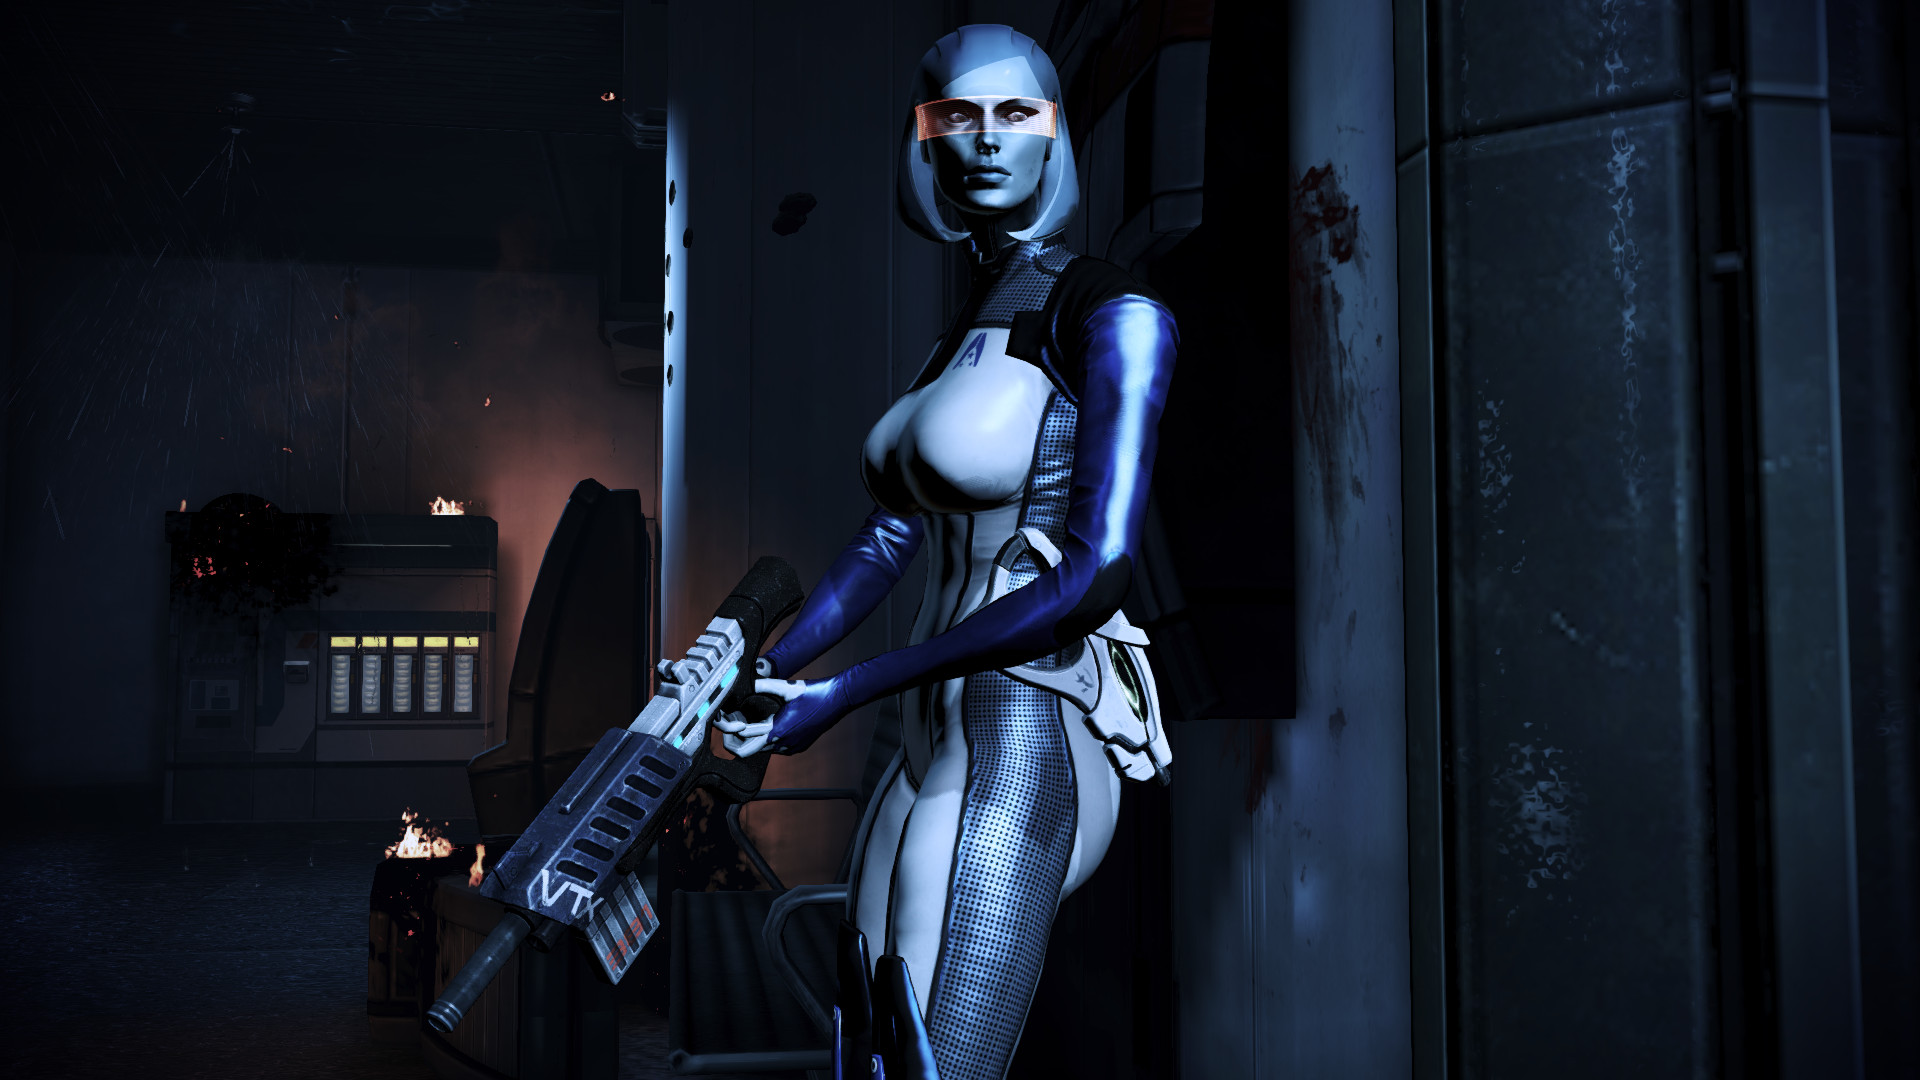 Mass effect porn image gallery sexual pic